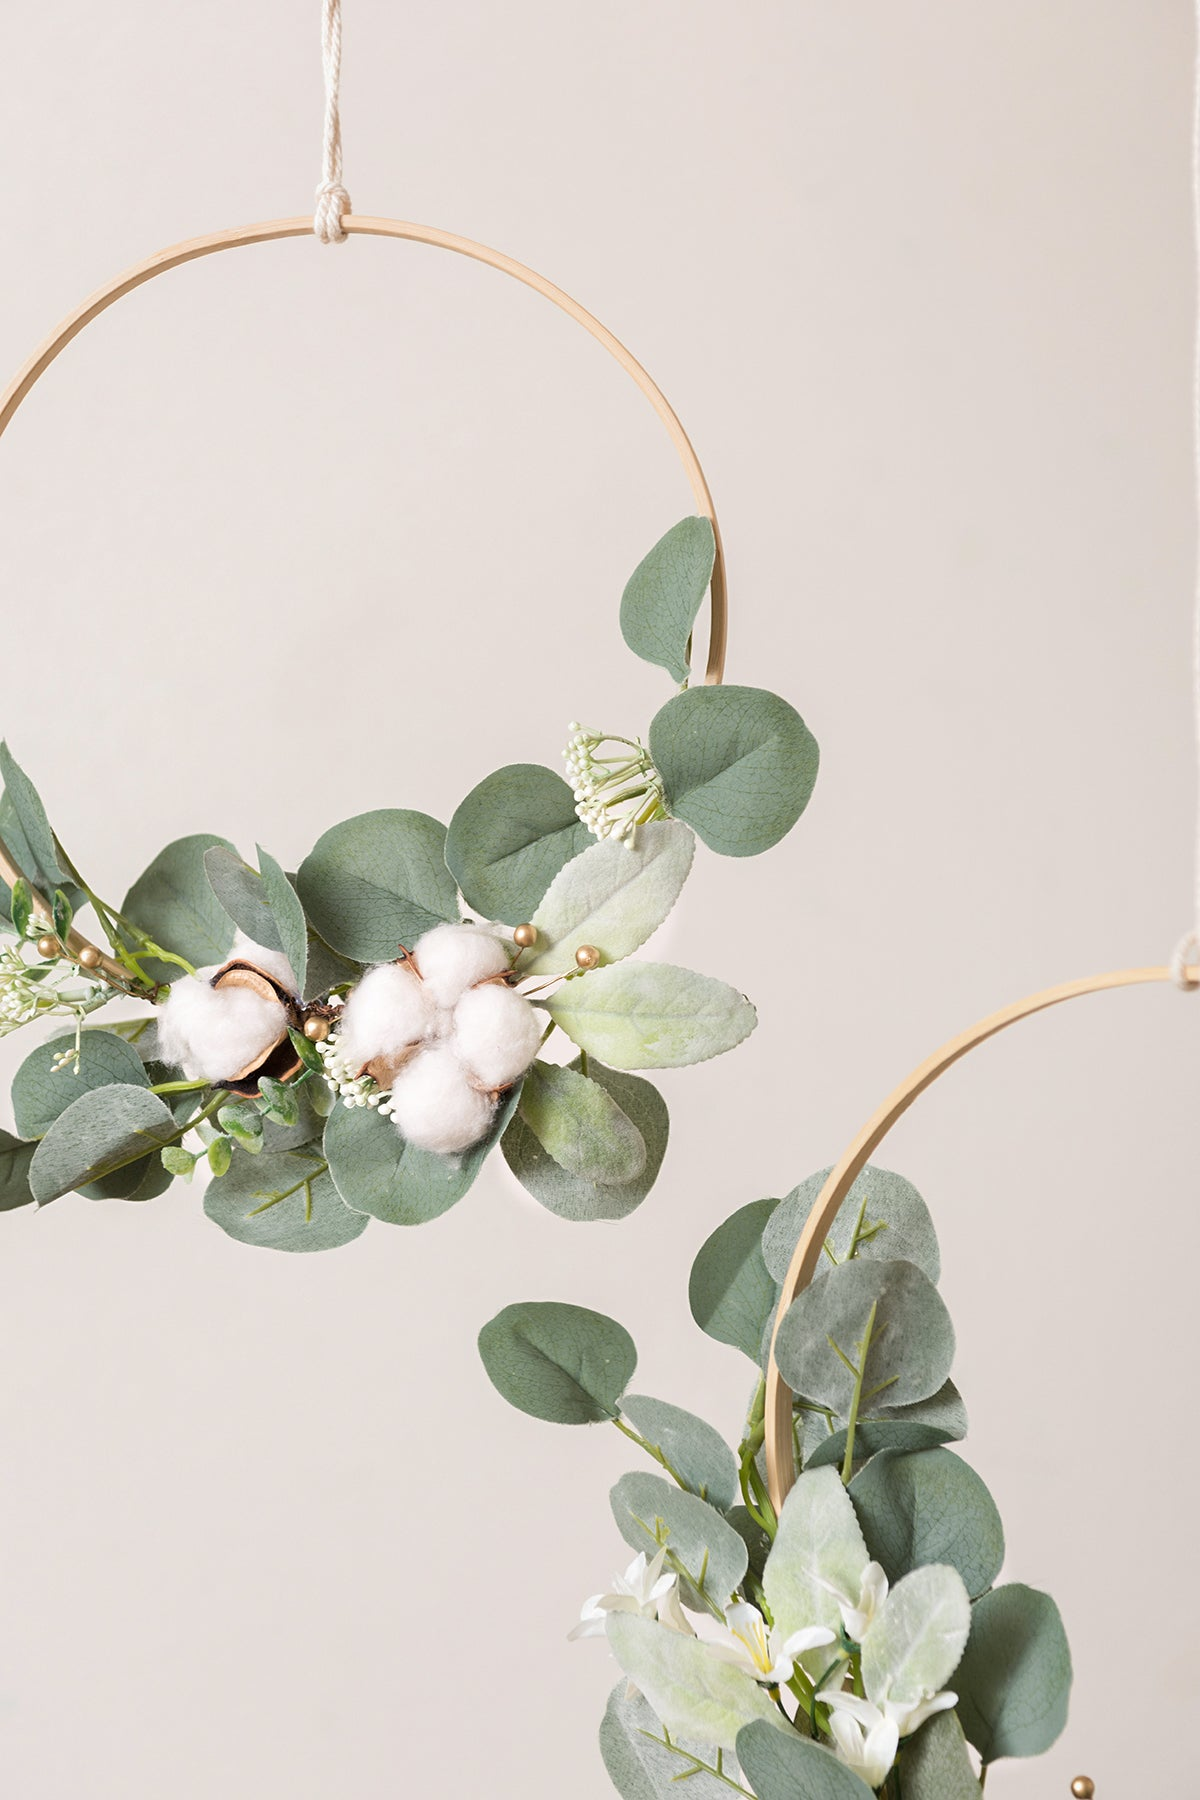 Cotton Eucalyptus Wreath (Set of 3) - White & Green